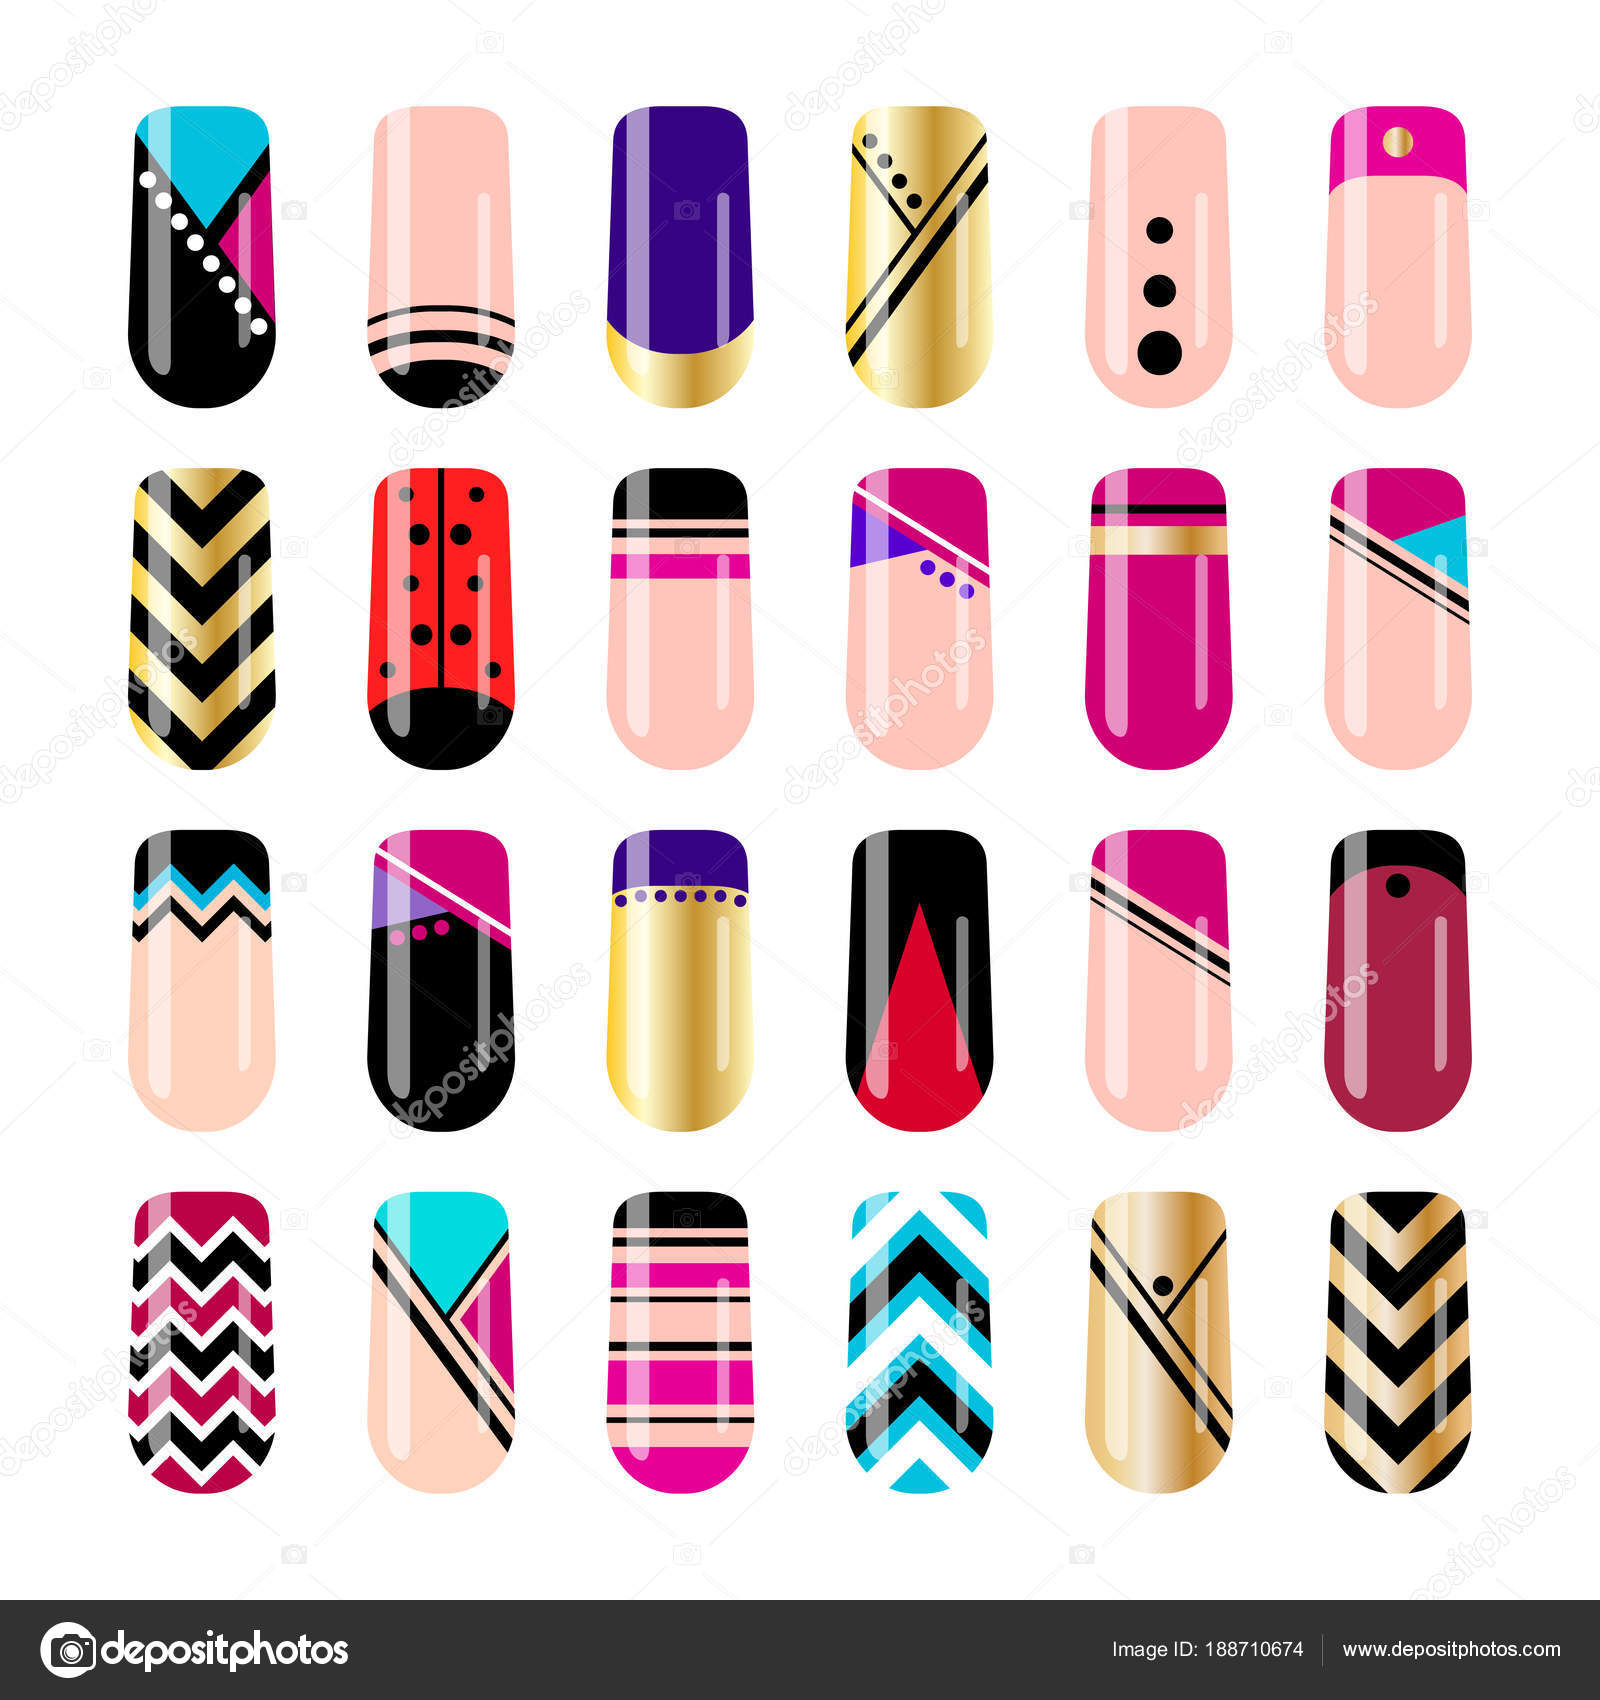 image regarding Printable Nail Art titled Printable nail artwork templates Nail artwork structure. Geometric